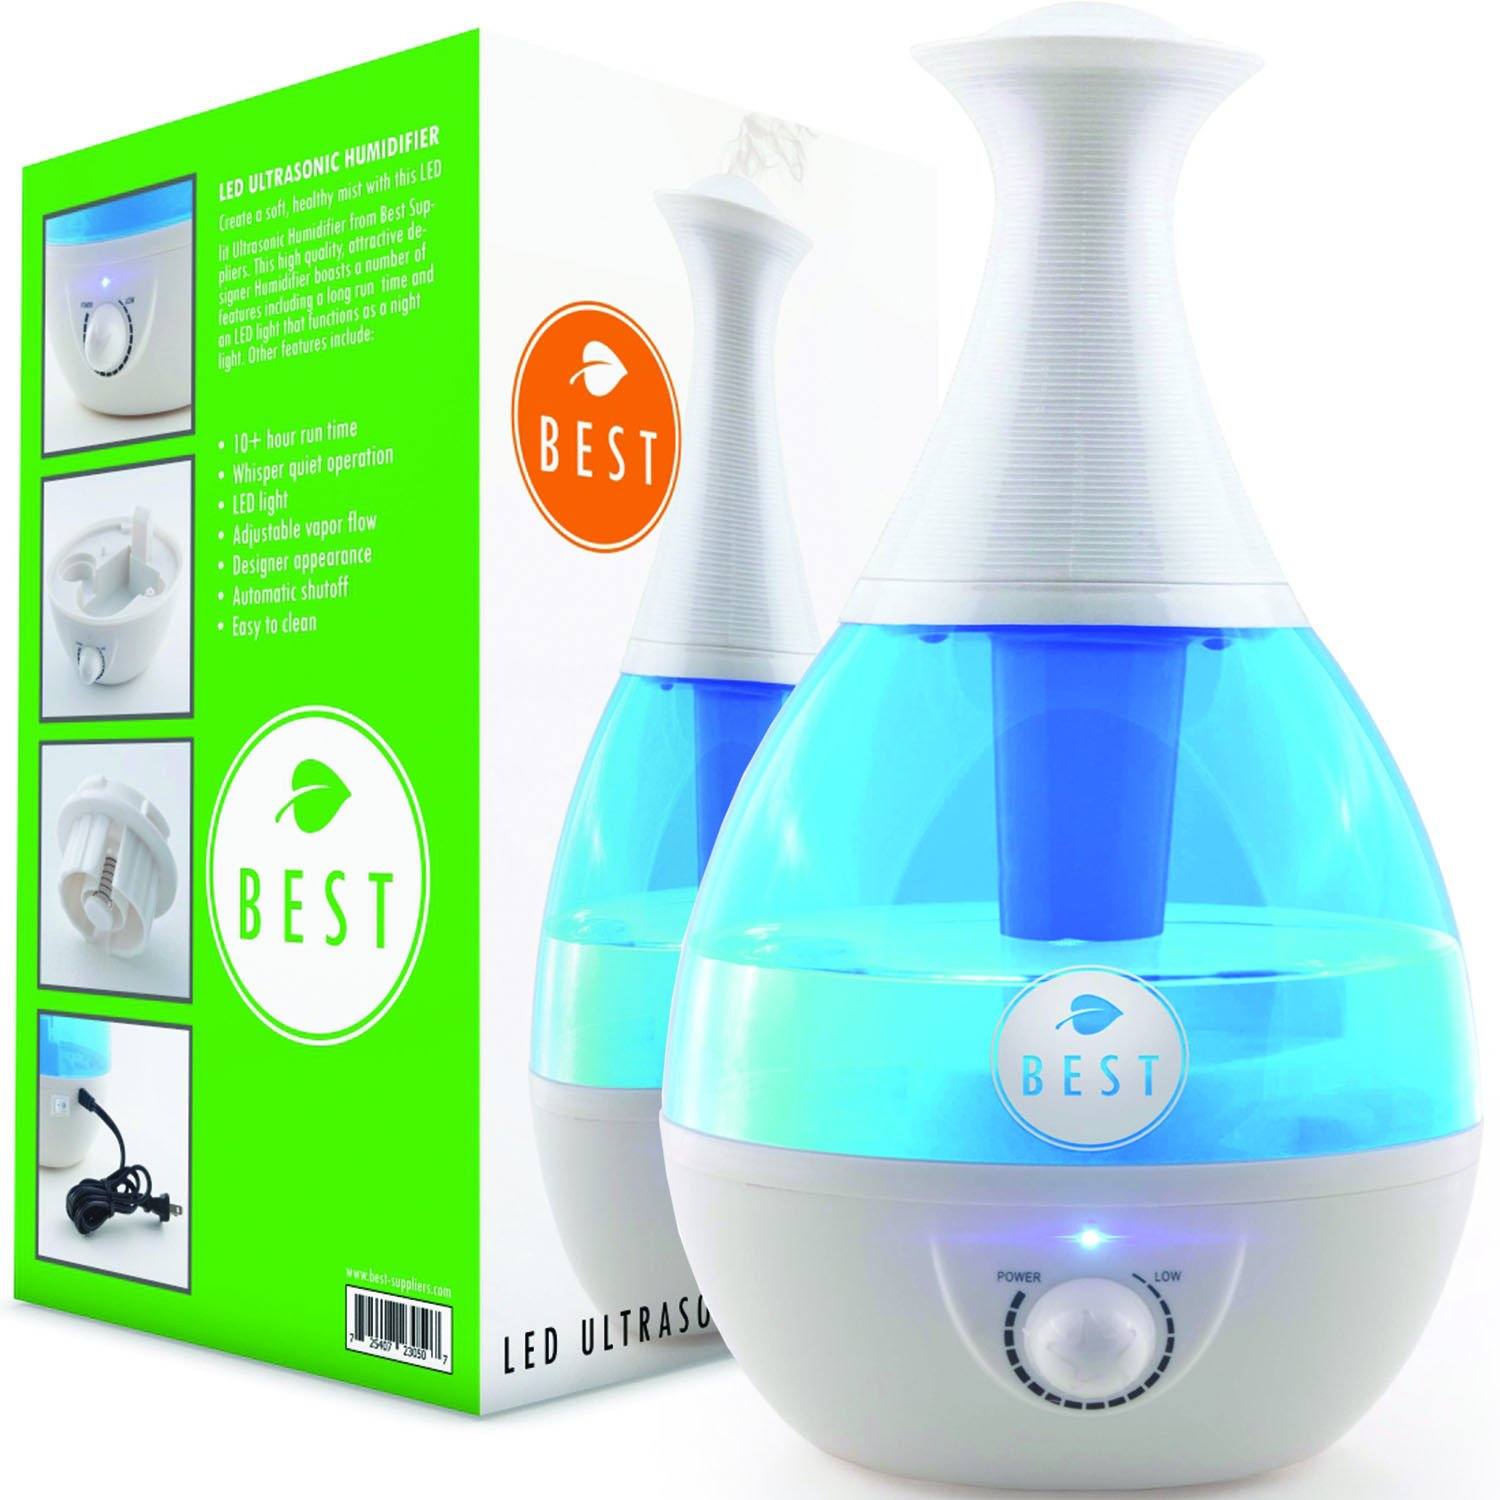 Top 10 Best Cool Mist Humidifiers For Dry Skin 2018 2019